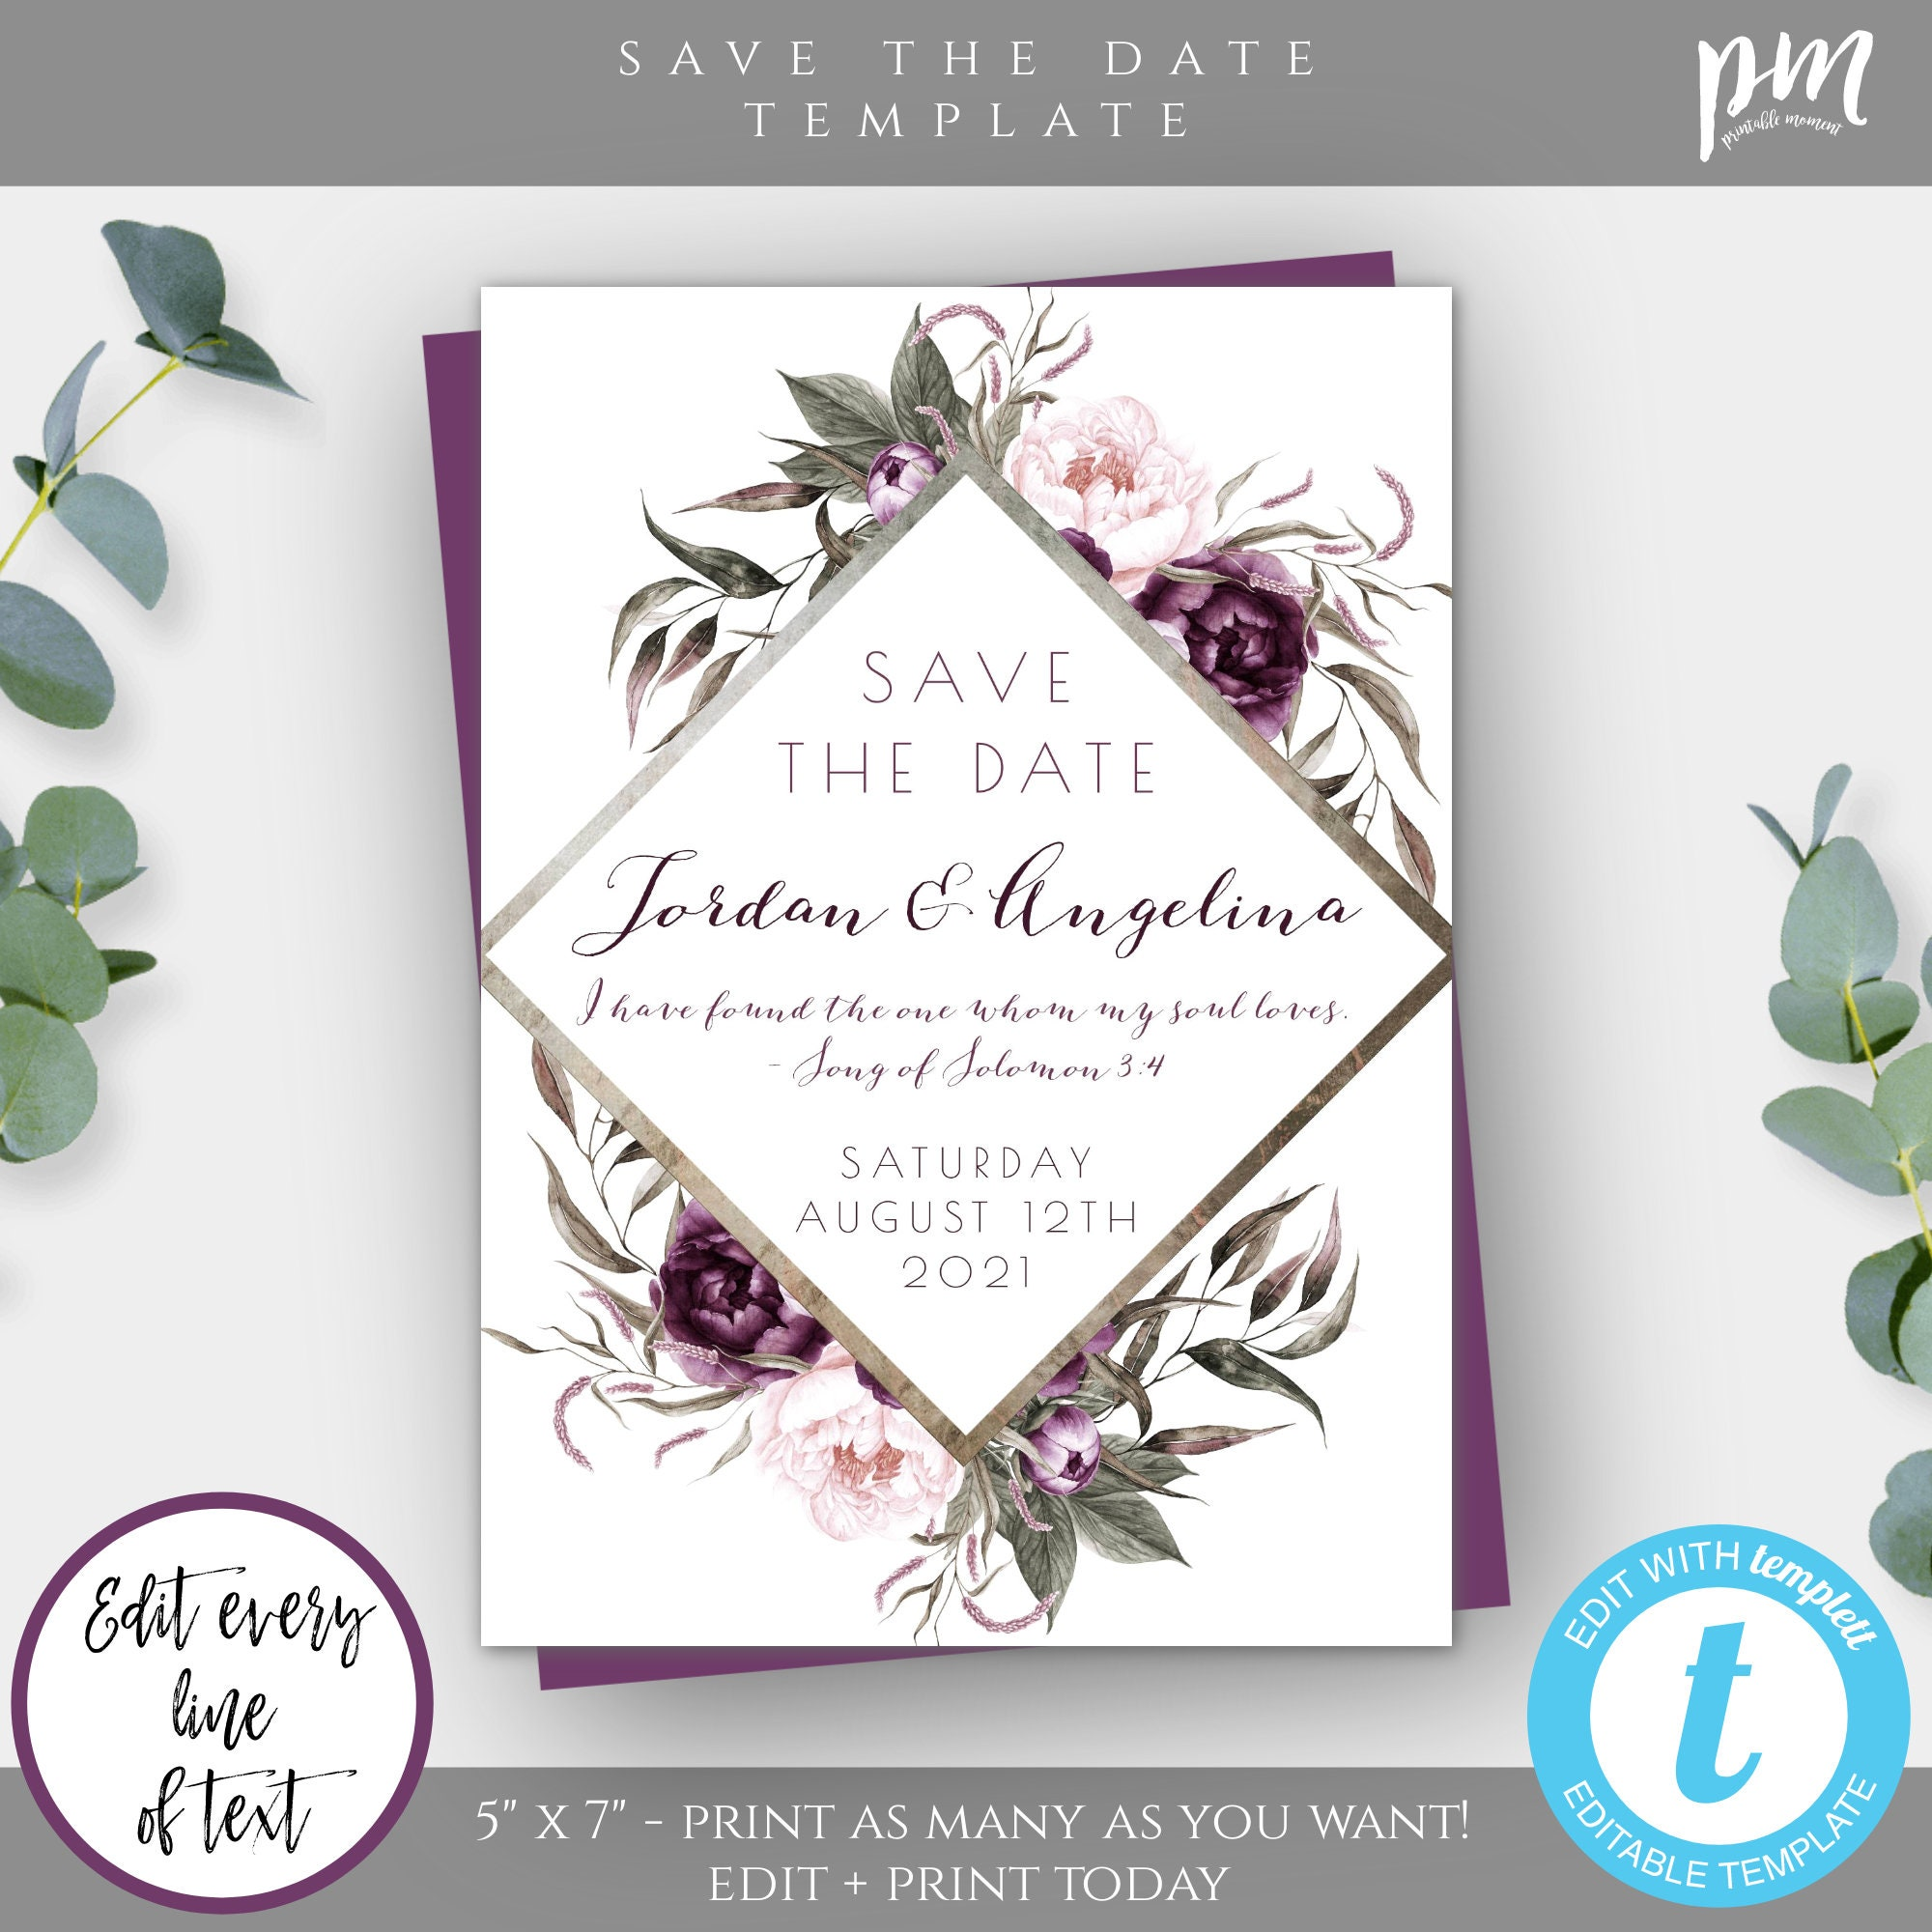 Printable Bohemian Save The Date DIY Editable Boho Save The Date Instant Download Pink Floral Save The Date Invitation Template WBBH